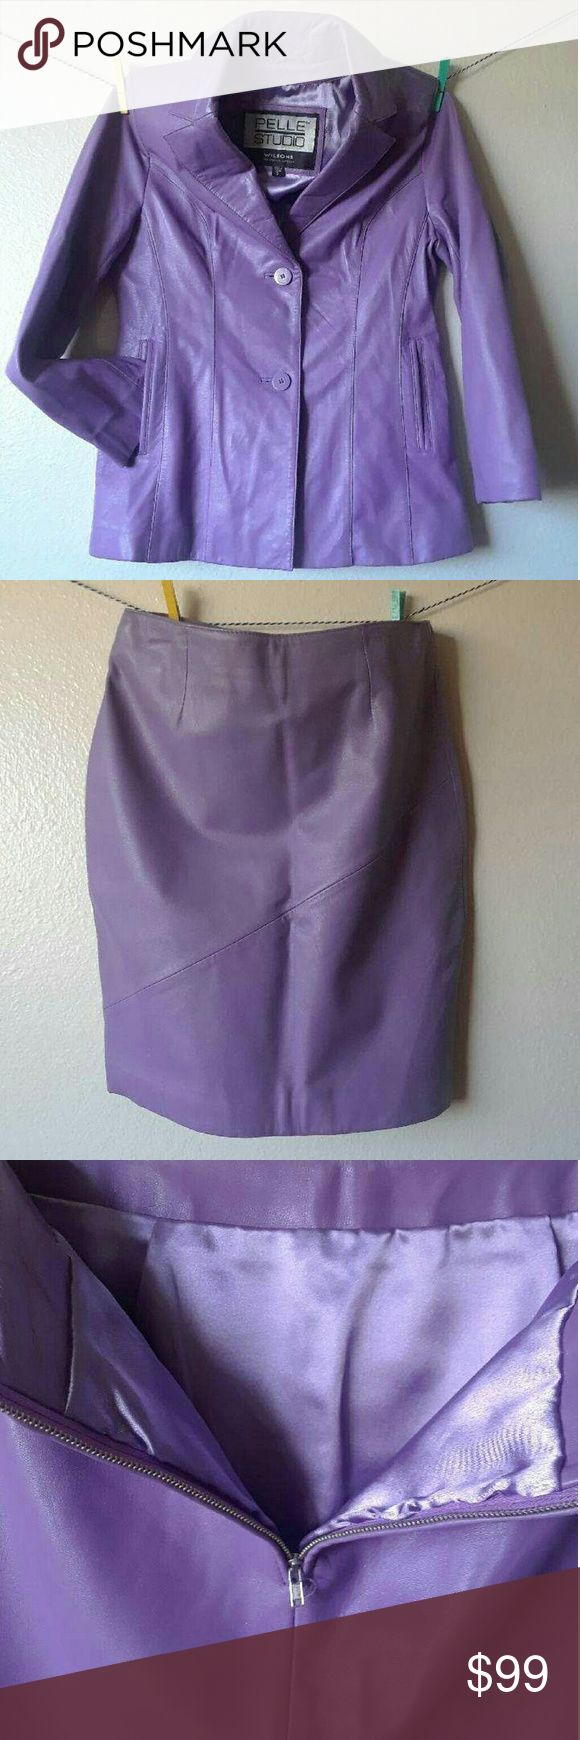 Purple Leather Jacket Skirt Set Wilson's purple Leather Blazer Jacket and skirt set. Excellent condition, feont pockets, buttin front. Zippers function fine. Comfortable, silky lining, sexy! Jacket is a fitted blazer style size SMALL Skirt is a fitted mini style size 6 Wilsons Leather Jackets & Coats Blazers